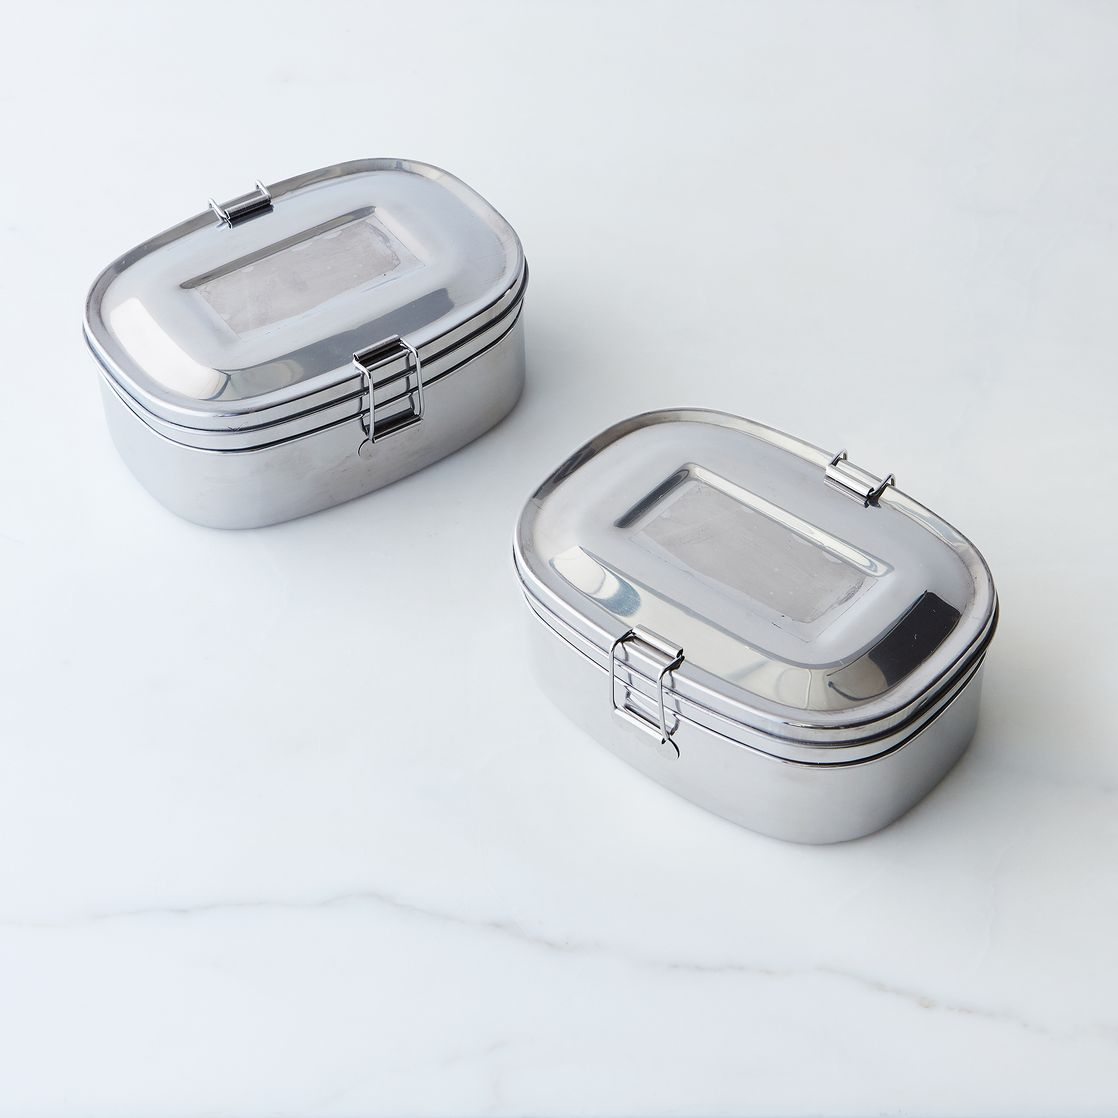 2-Layer Sandwich Box (Set of 2) - Lunch Container -- Kitchen Storage & Organization - Onyx | Shop Food52 on Food52